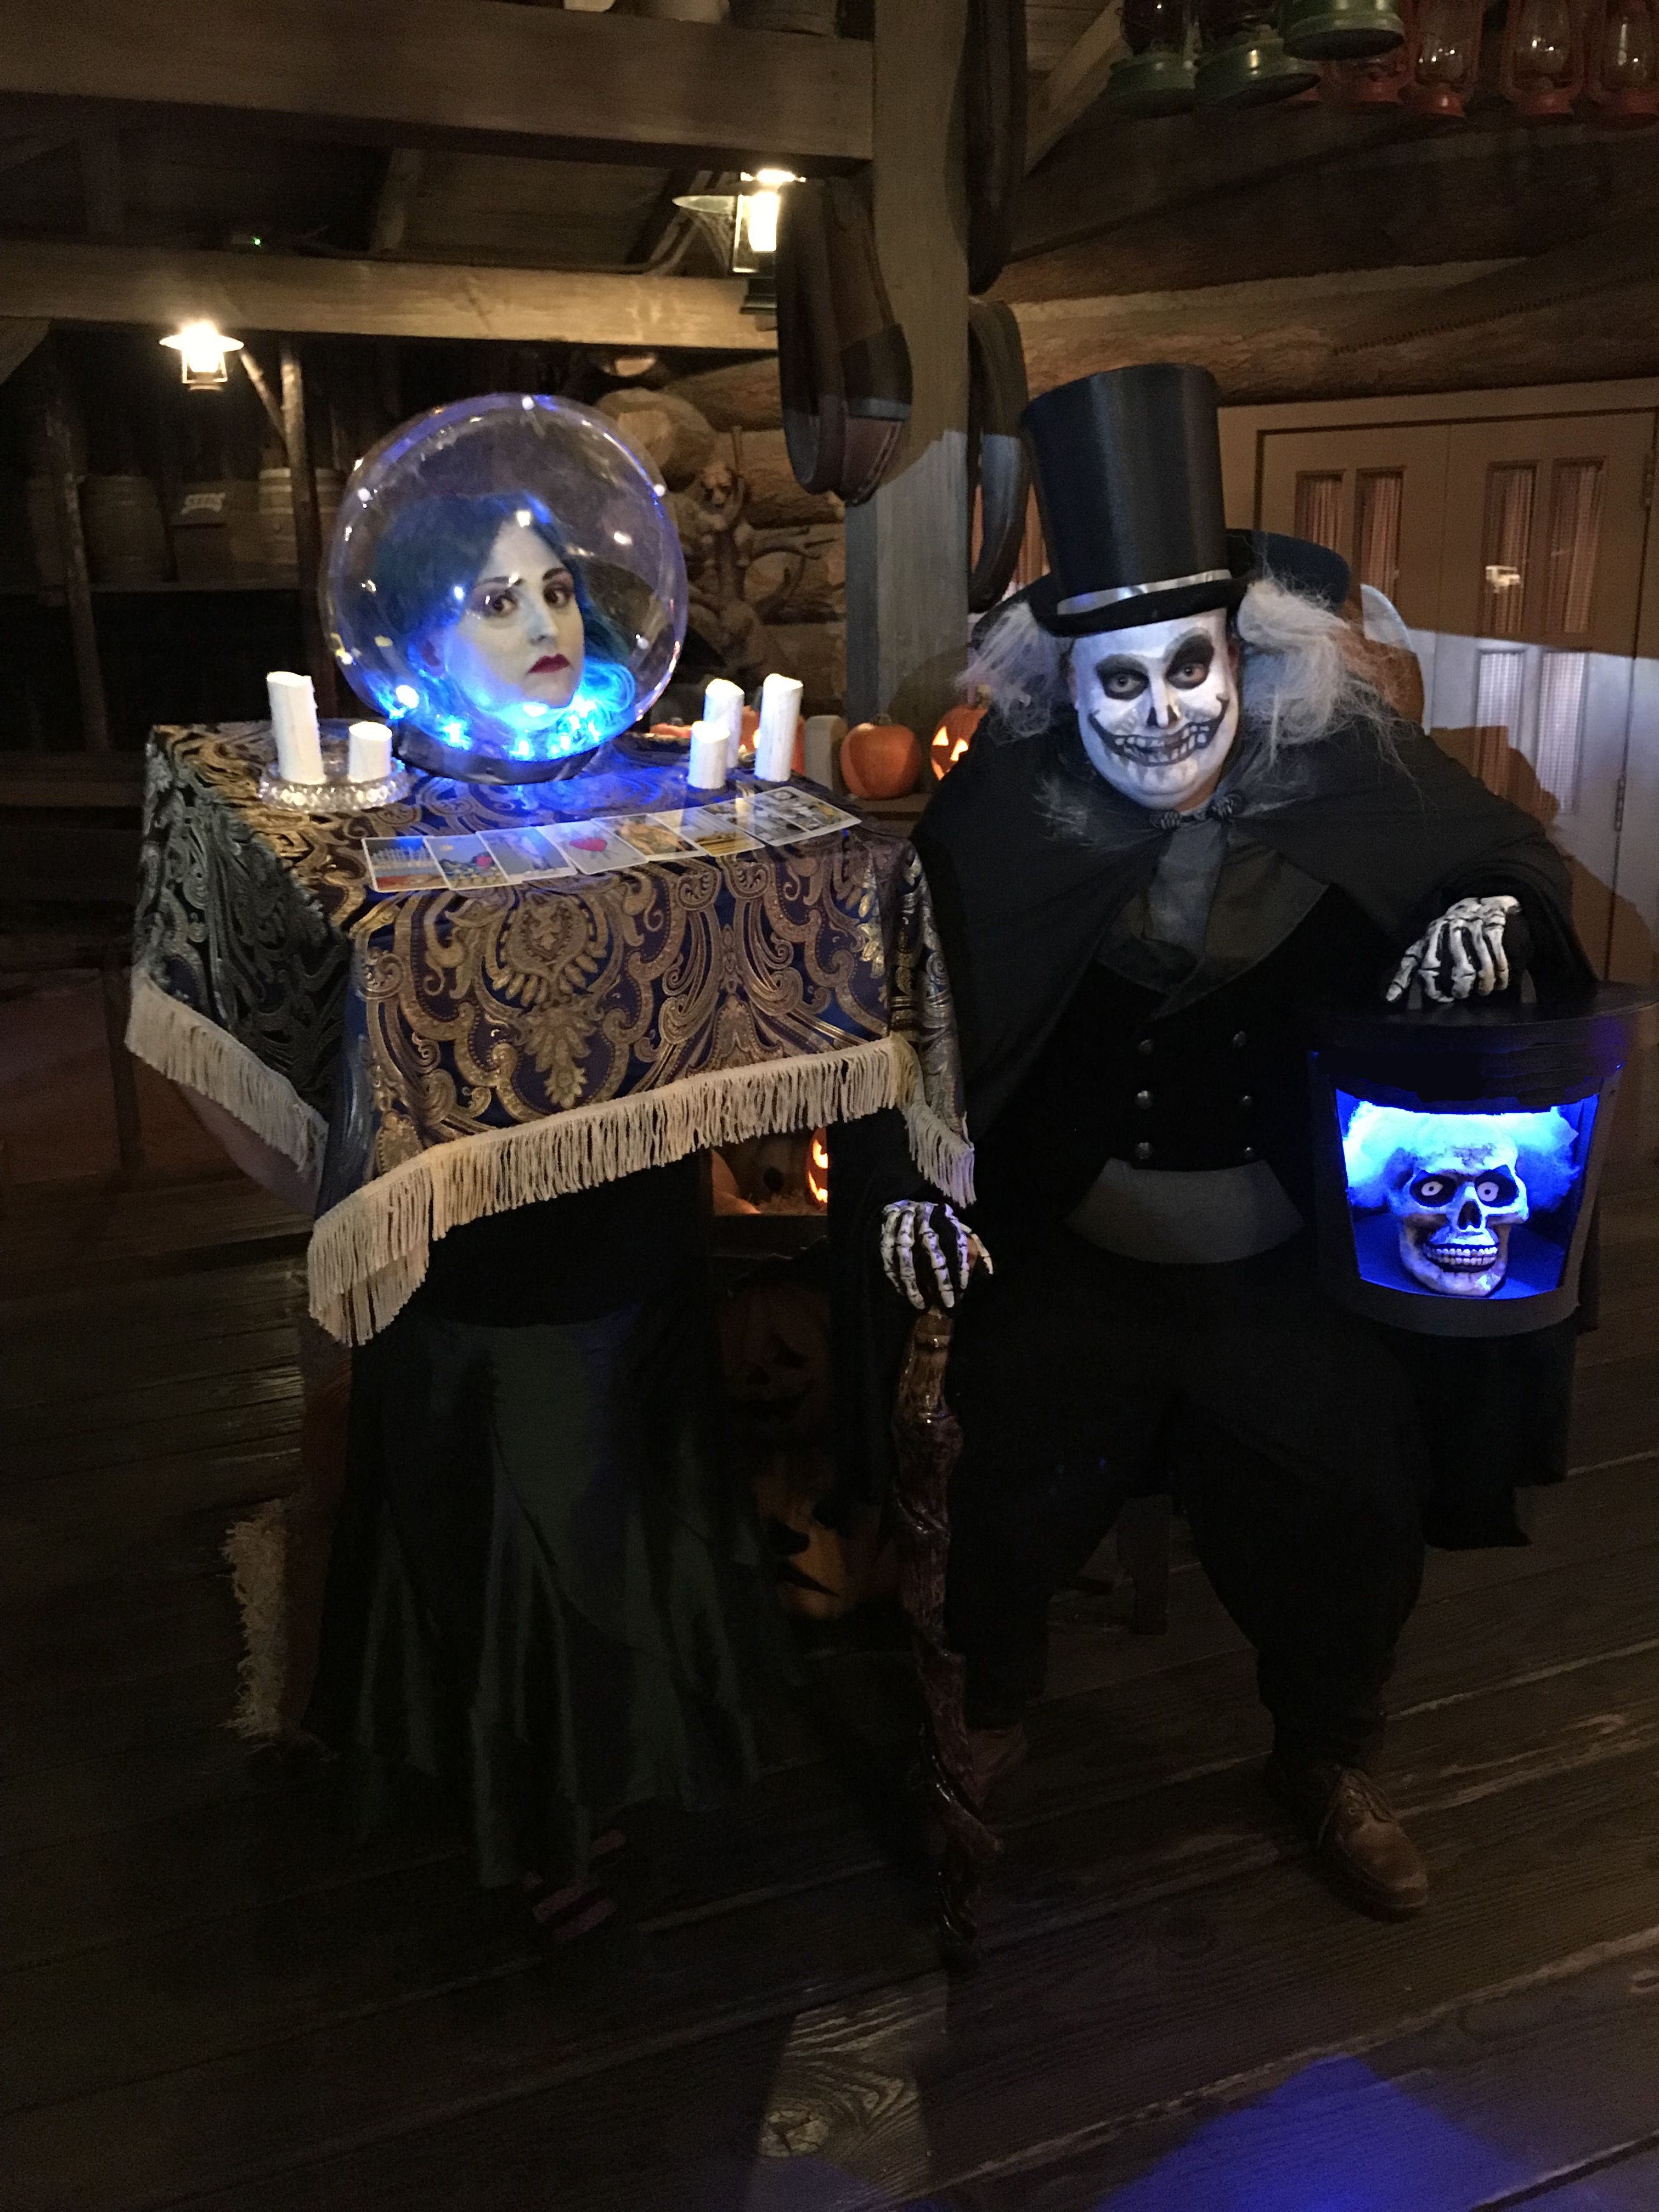 Madame Leota And Hatbox Ghost Haunted Mansion Cosplay Halloween Costumes At Disneyland Haunted Mansion Halloween Haunted Mansion Costume Mickey Halloween Party